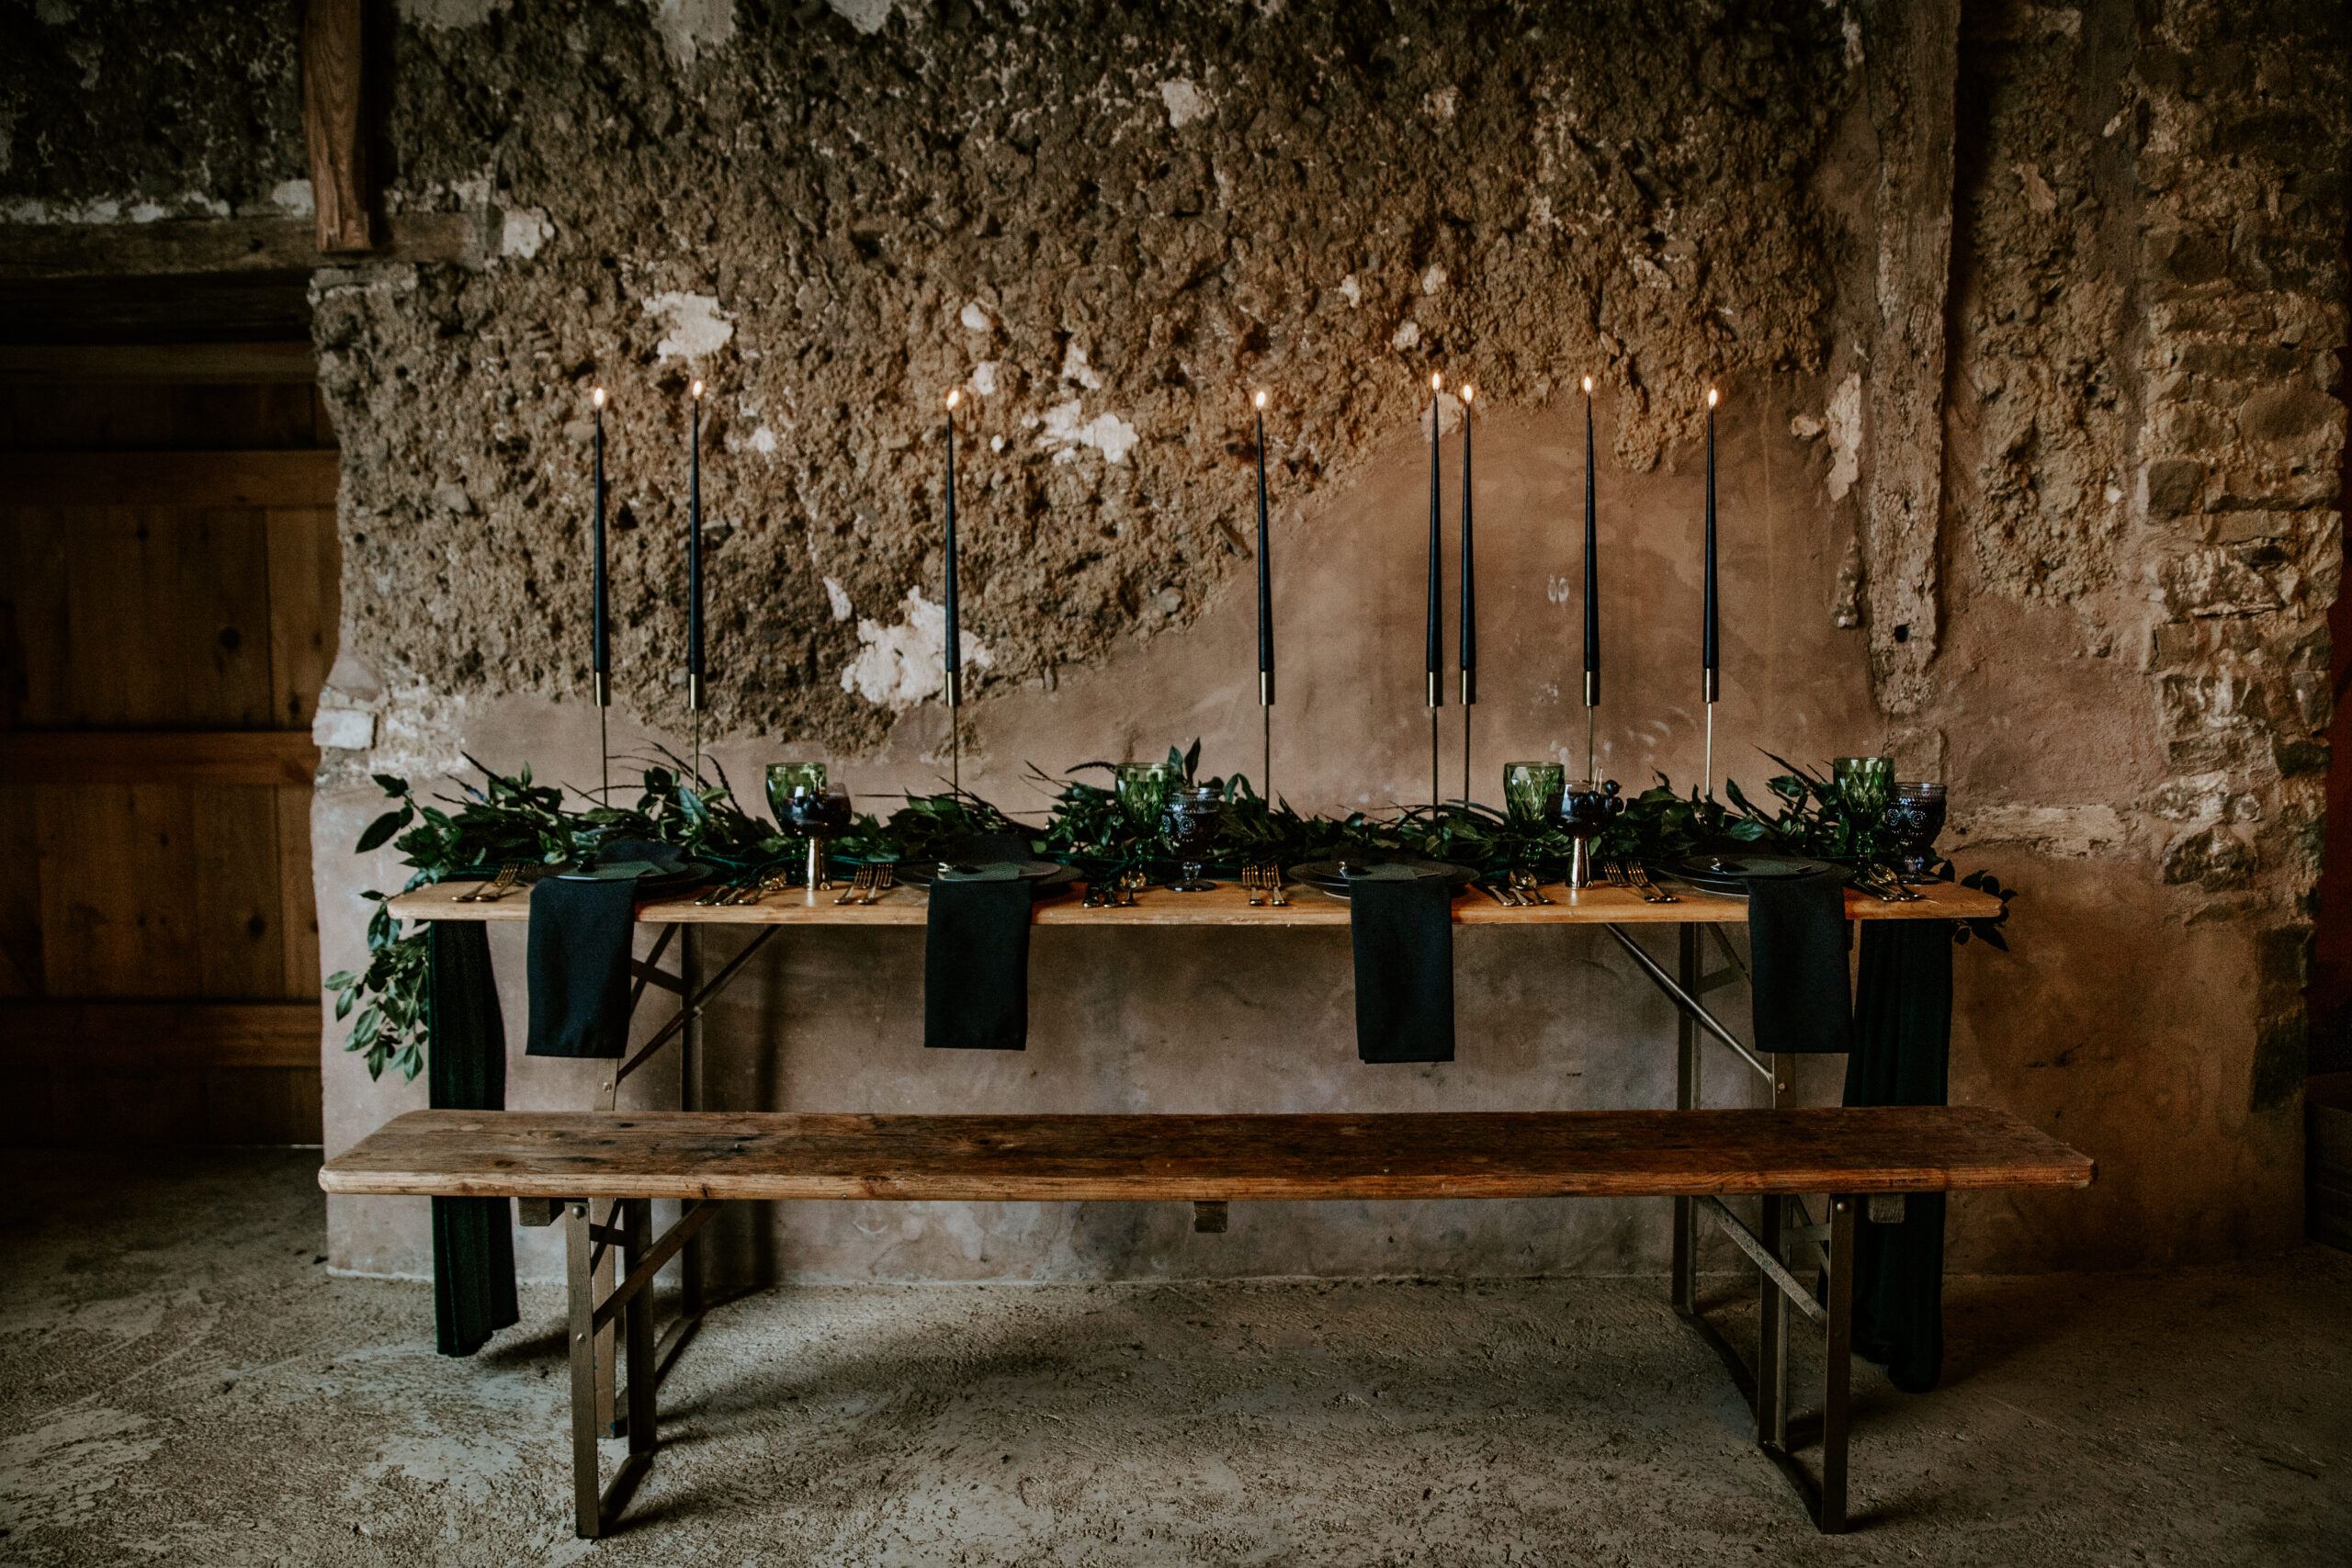 rustic table and bench styled with black candles and greenery